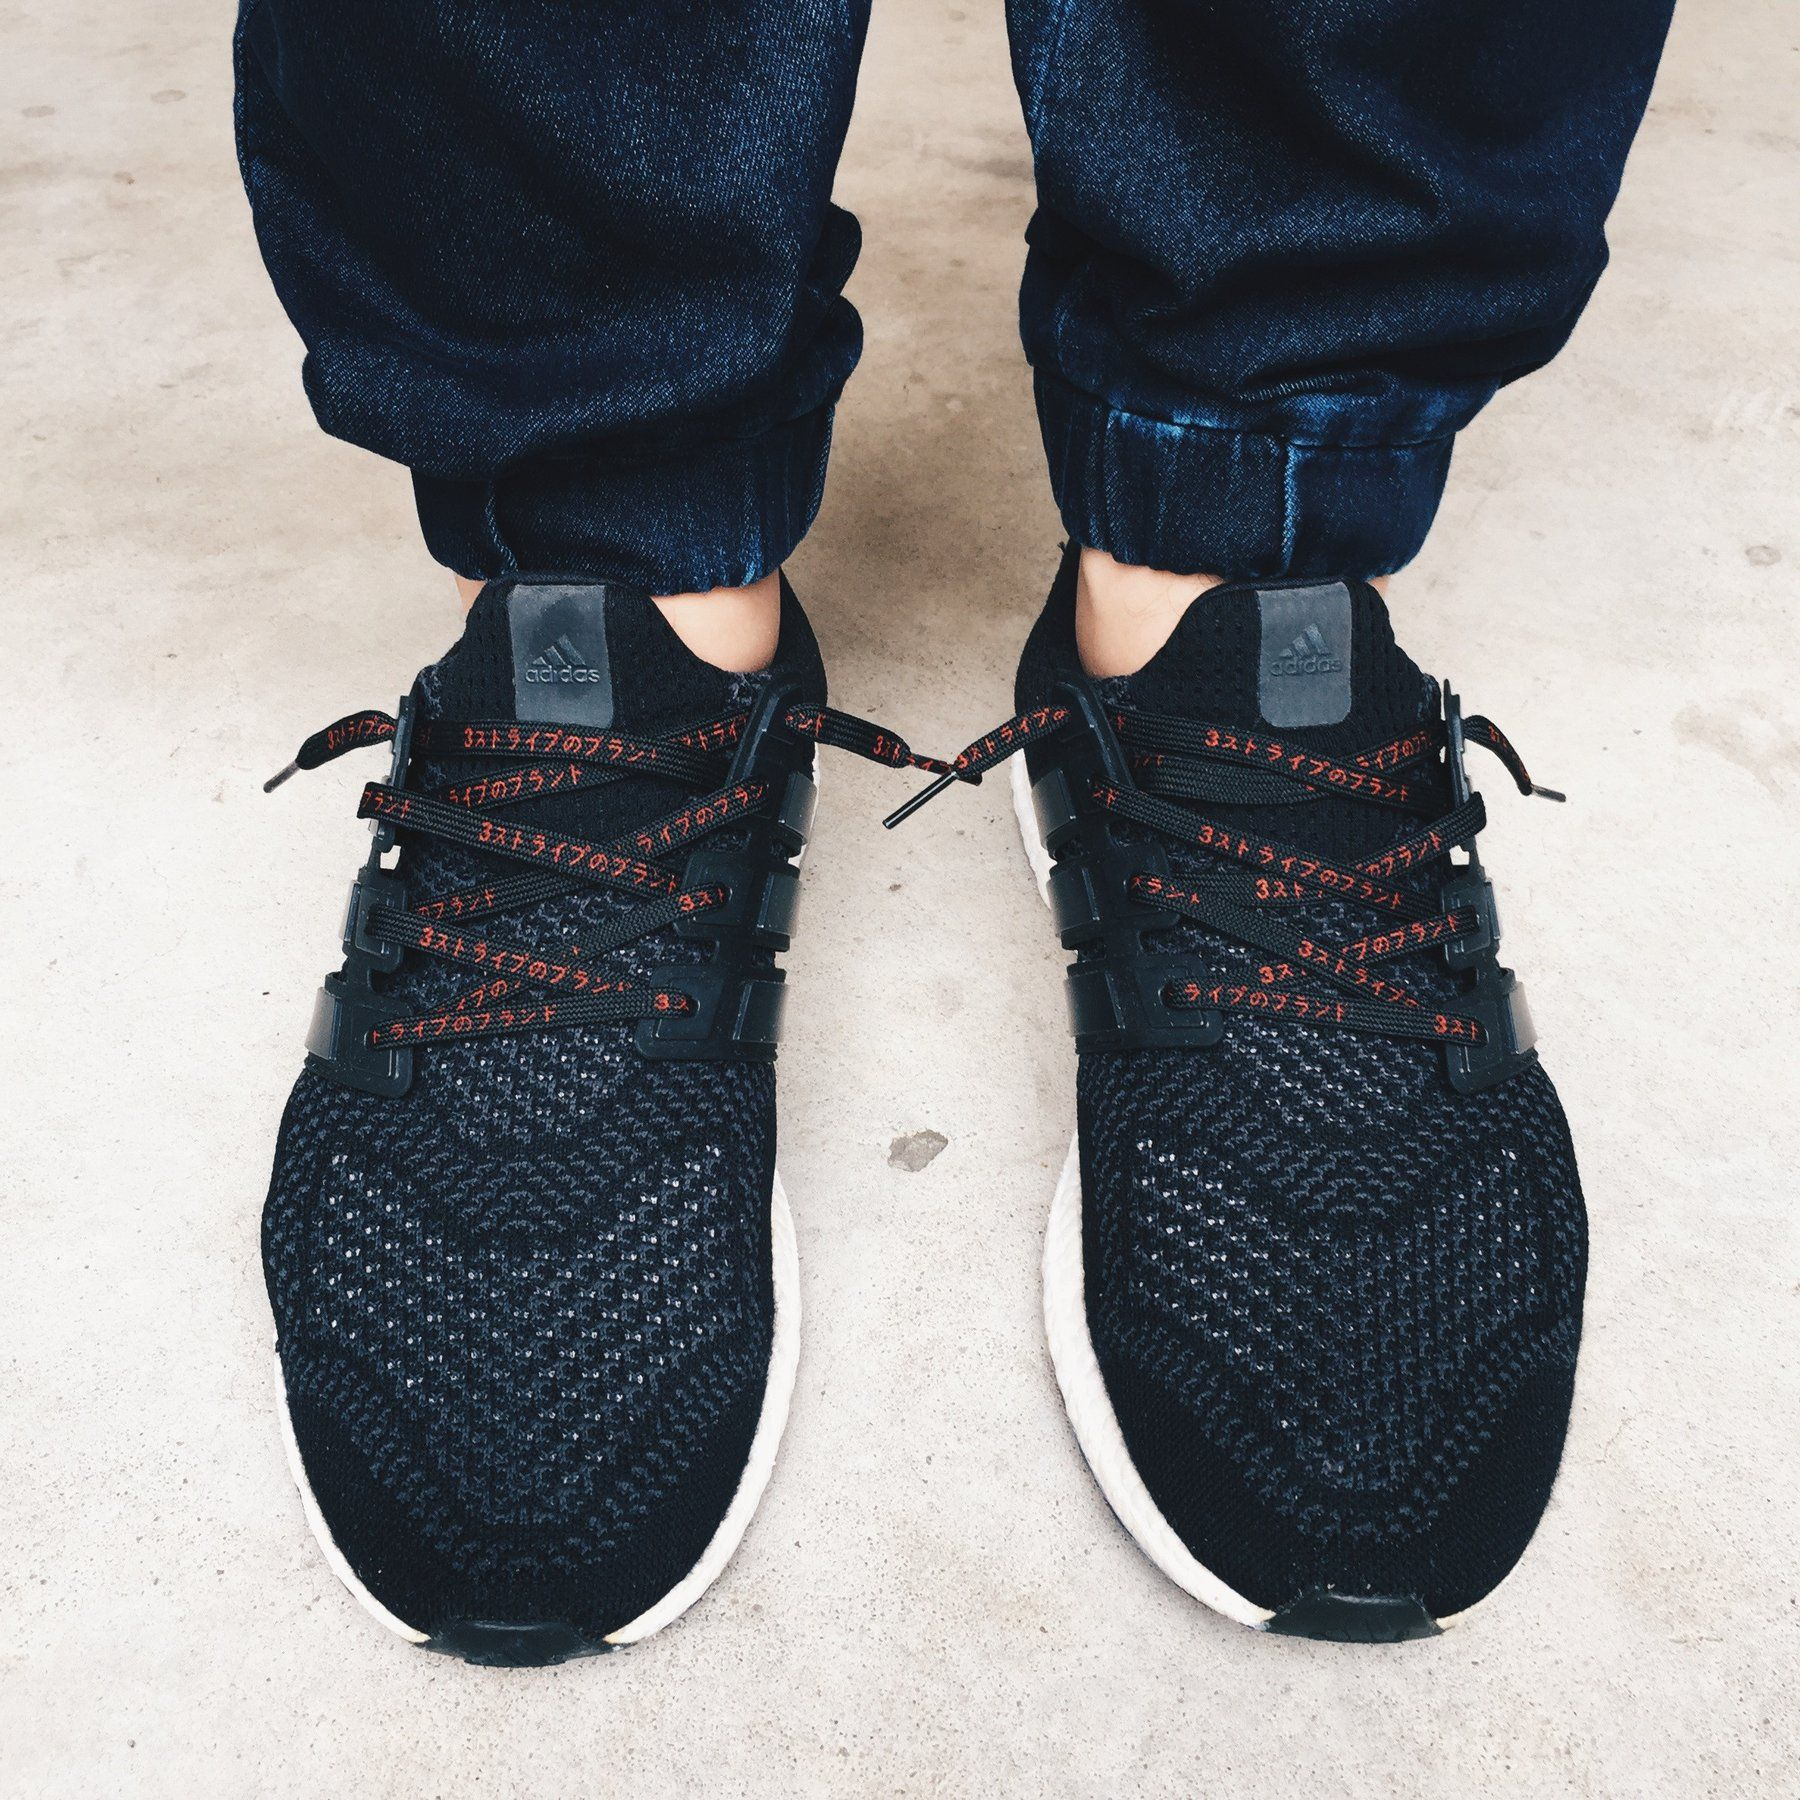 7d1b024c4 Slickieslaces makes high quality shoe laces for your sneakers. Rope, 3M,  Flat, Oval Shoe Laces, we have them all. Need ADIDAS NMD / Ultra Boost /  Yeezy ...